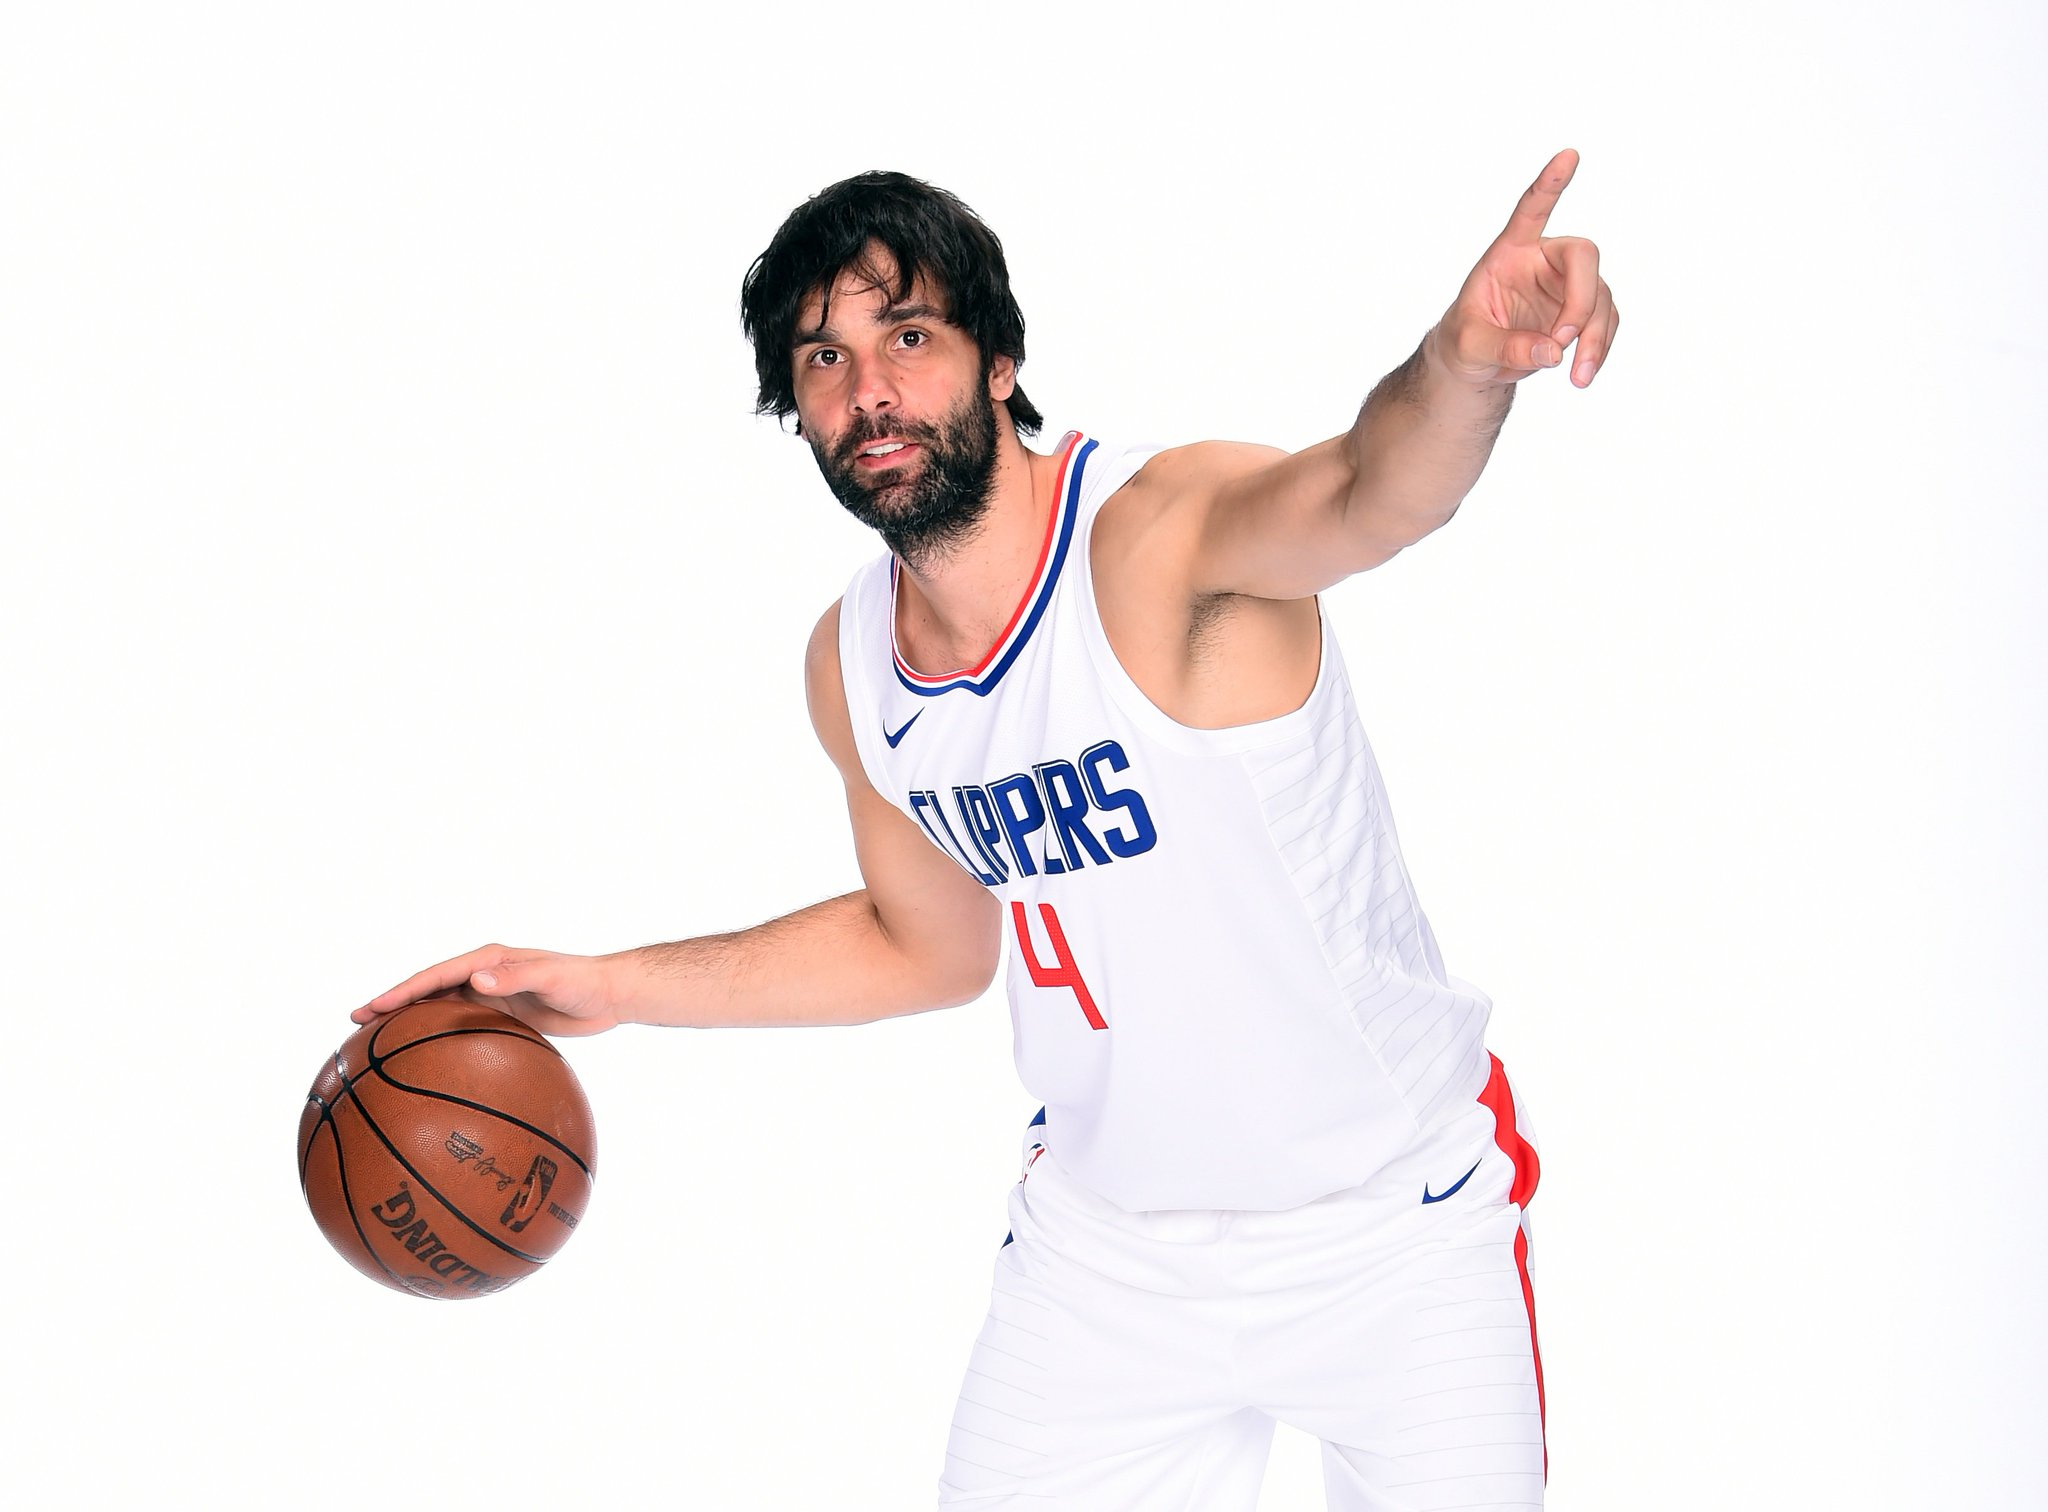 Join us in wishing @MilosTeodosic4 of the @LAClippers a HAPPY 31st BIRTHDAY!   #NBABDAY #ItTakesEverything https://t.co/RNEKr3dizx